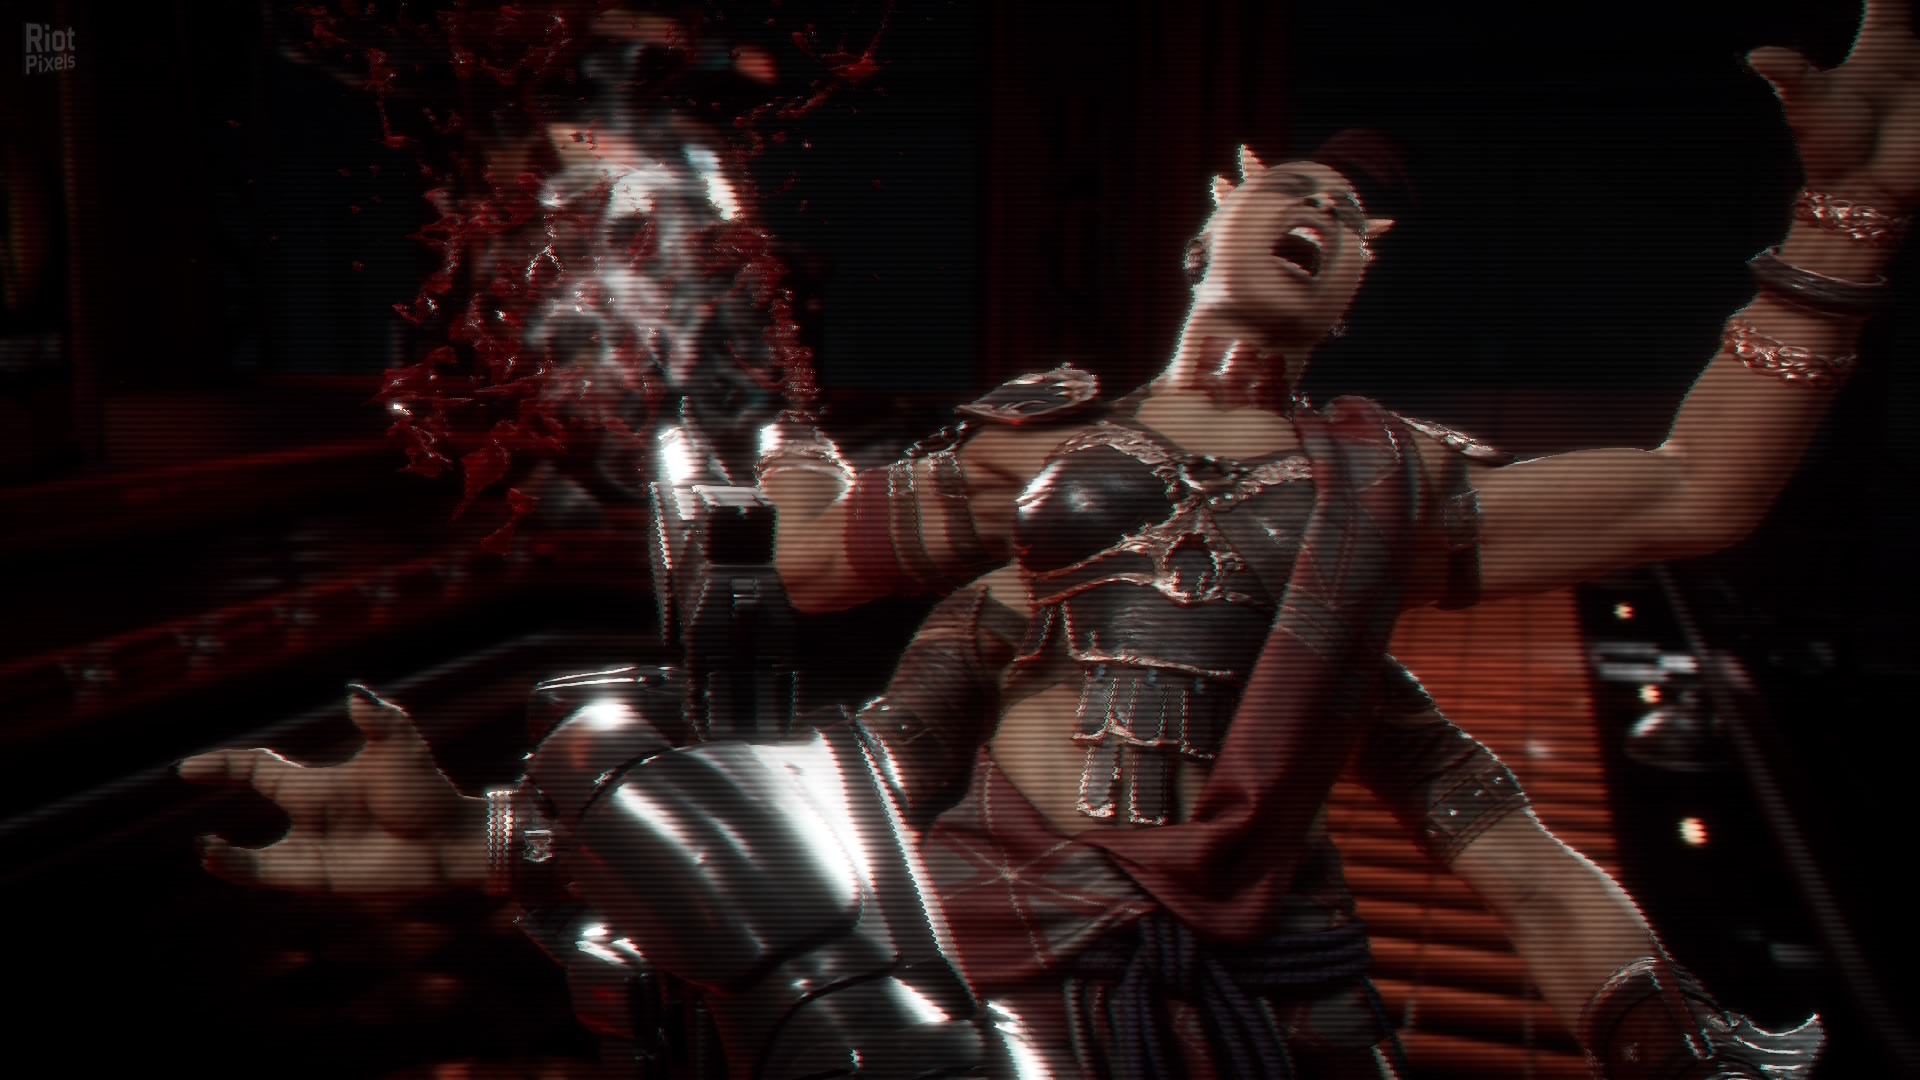 Mortal Kombat 11 Aftermath Game Screenshots At Riot Pixels Images